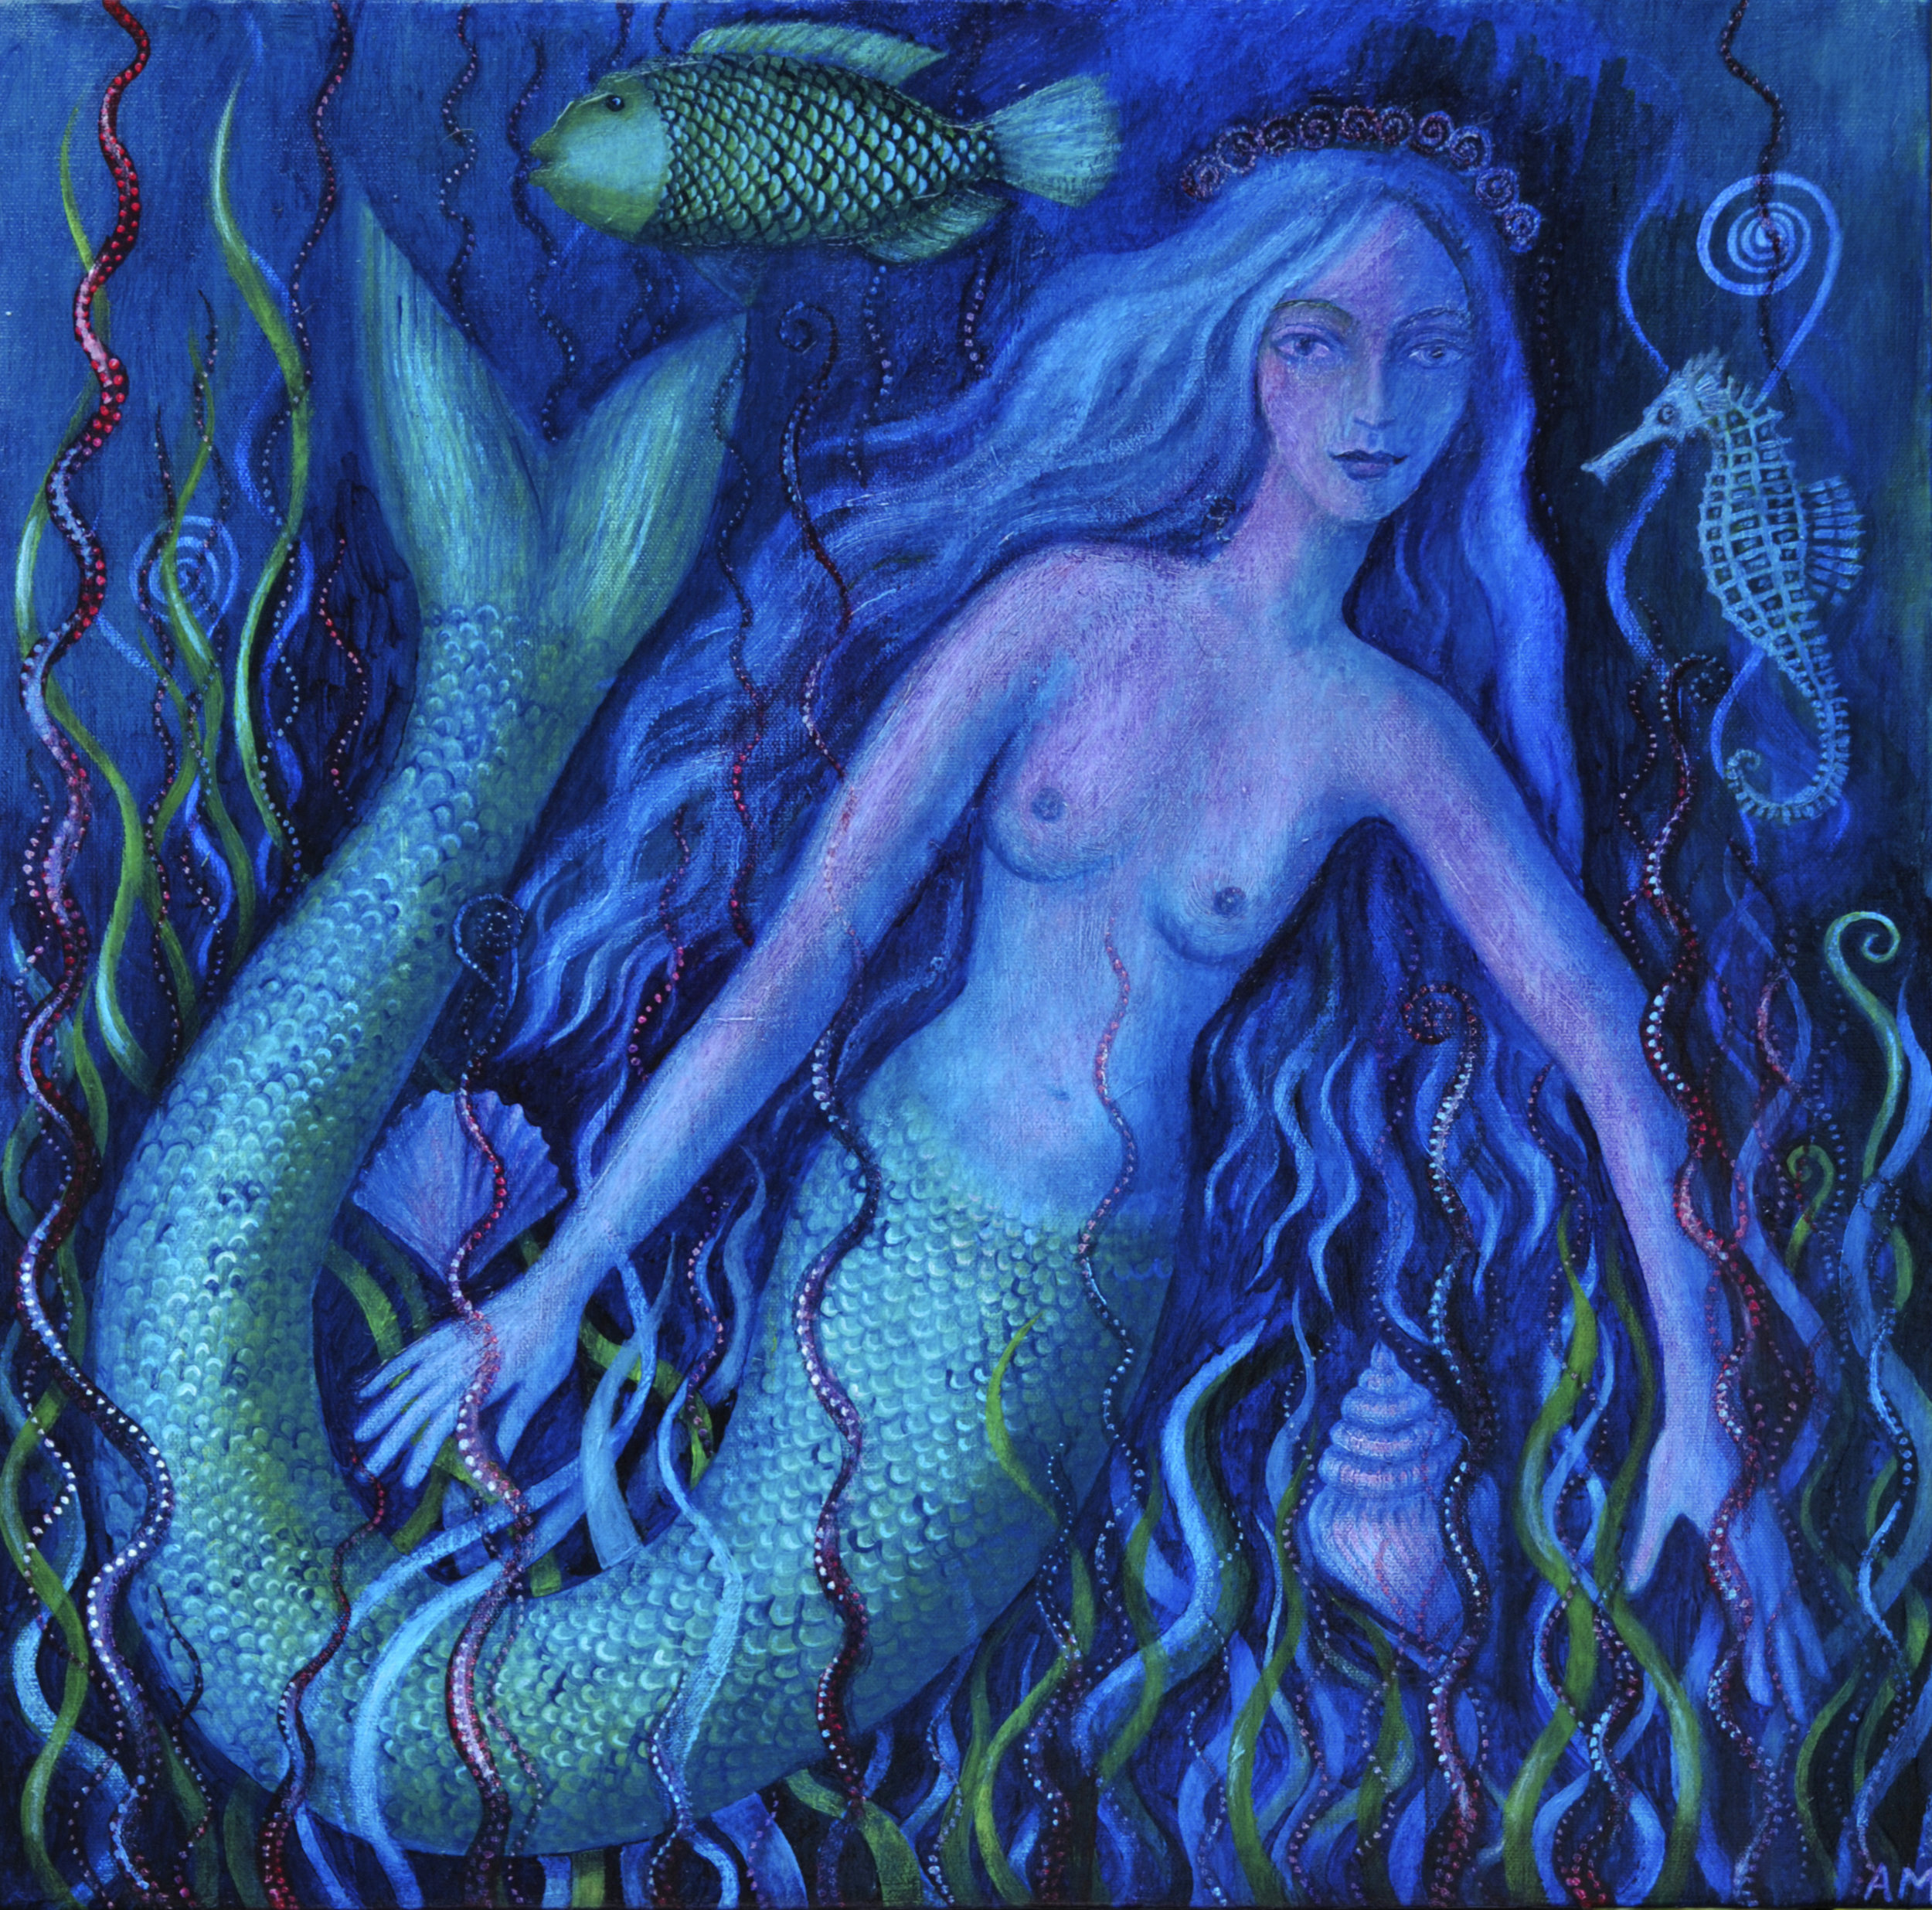 Blue mermaid.jpg